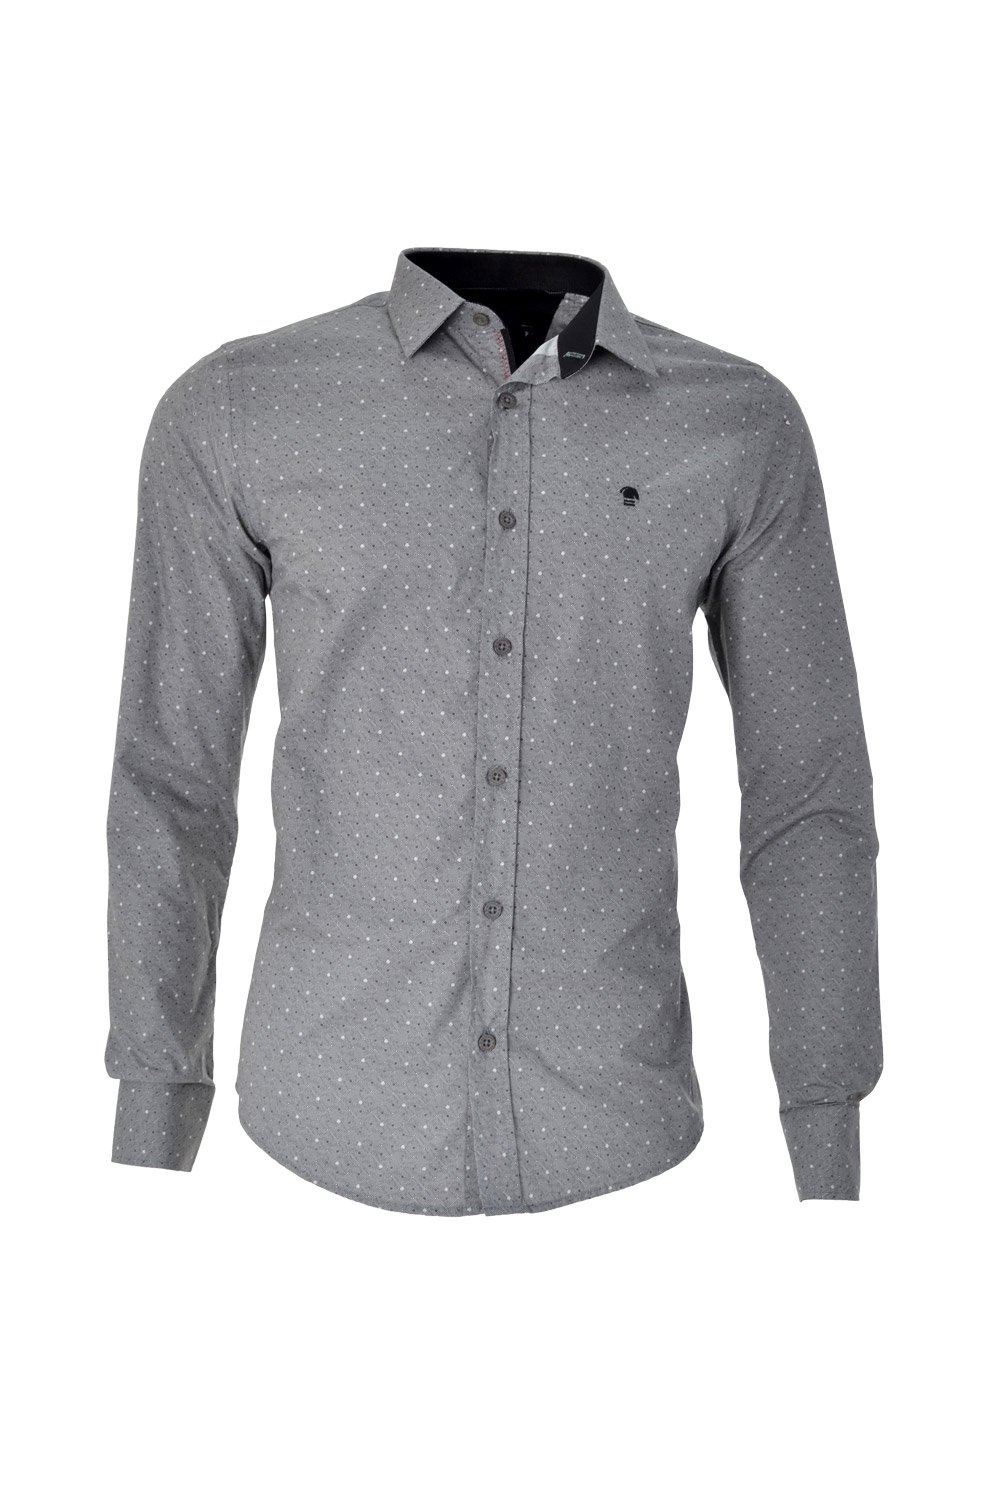 CAMISA ML FASHION ALGODAO FIO TINTO ESTAMPA GEOMETRICO